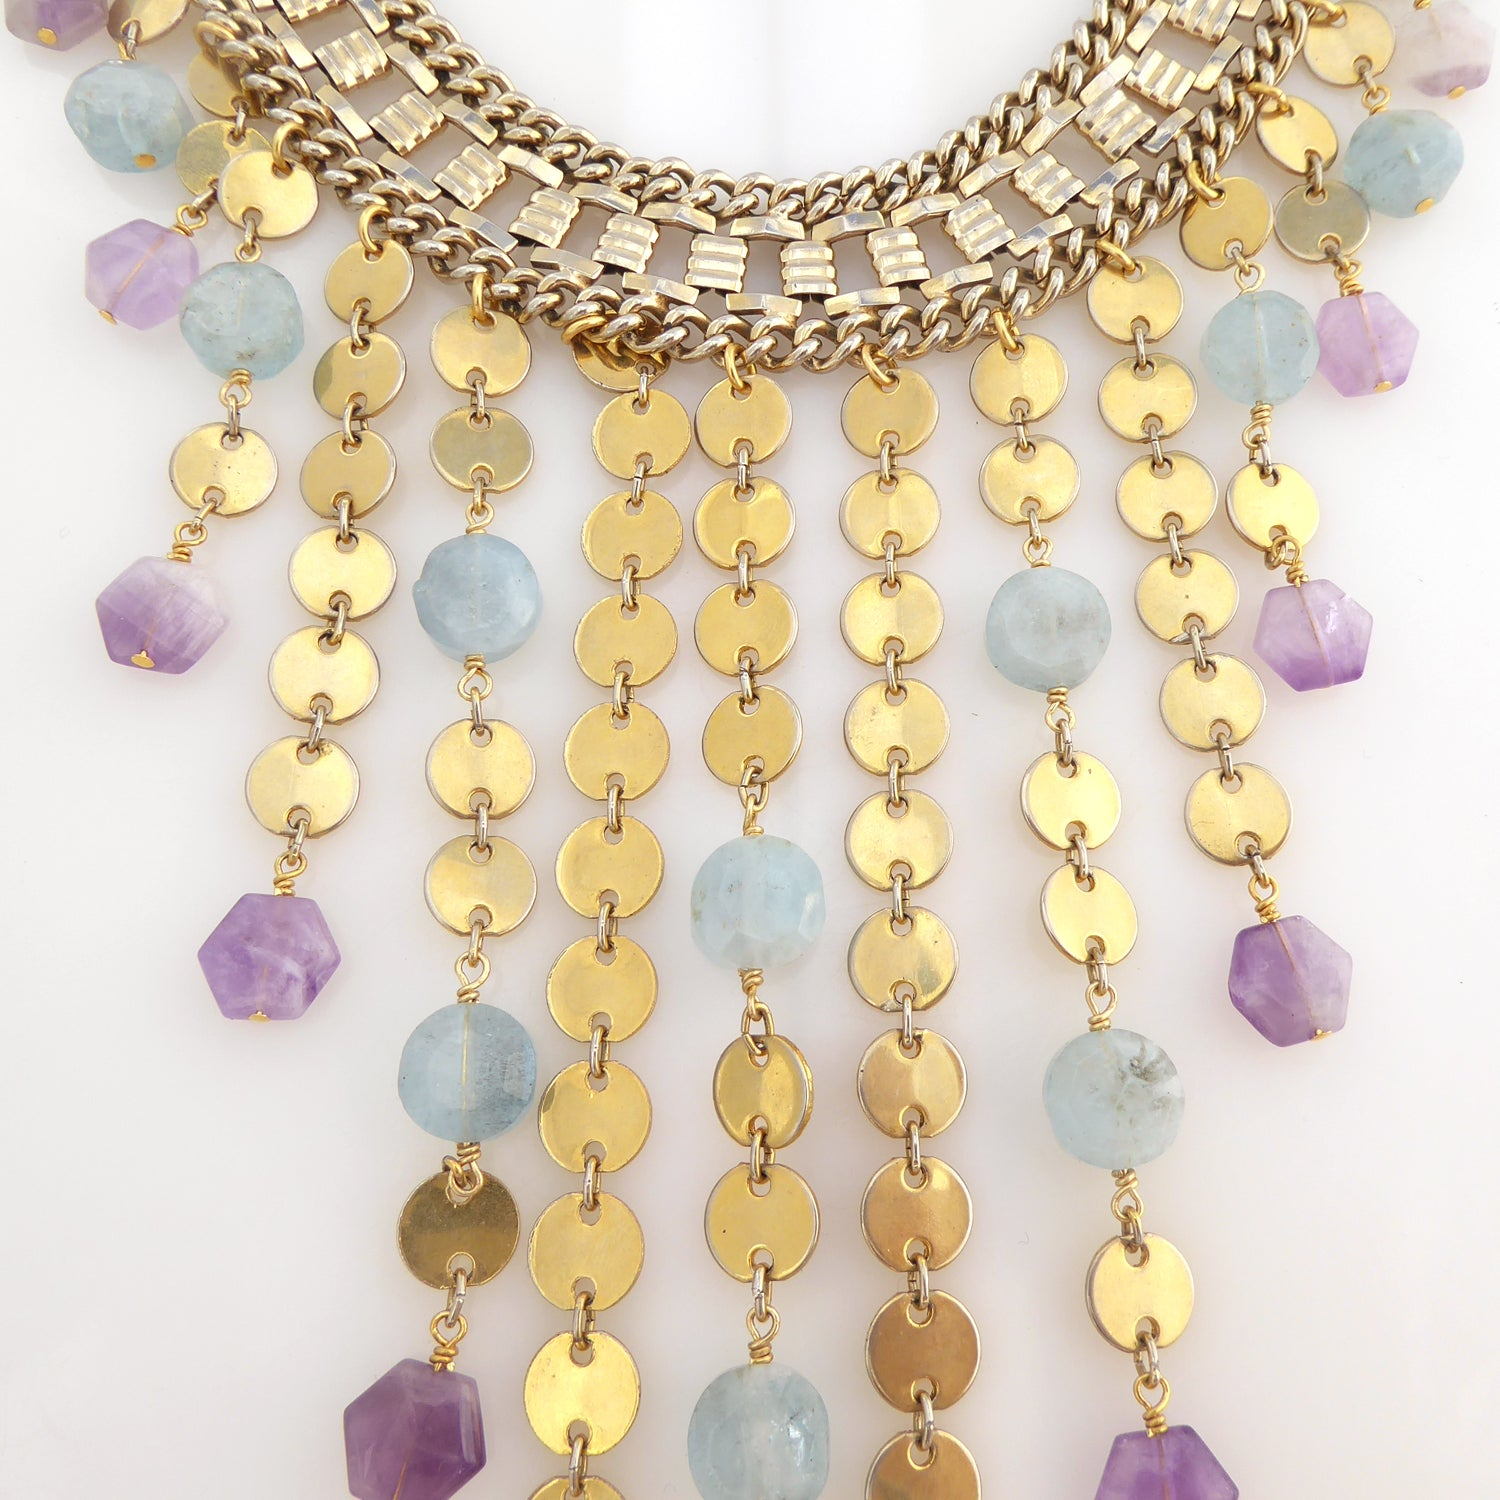 Carmeline aquamarine and amethyst necklace by Jenny Dayco 5